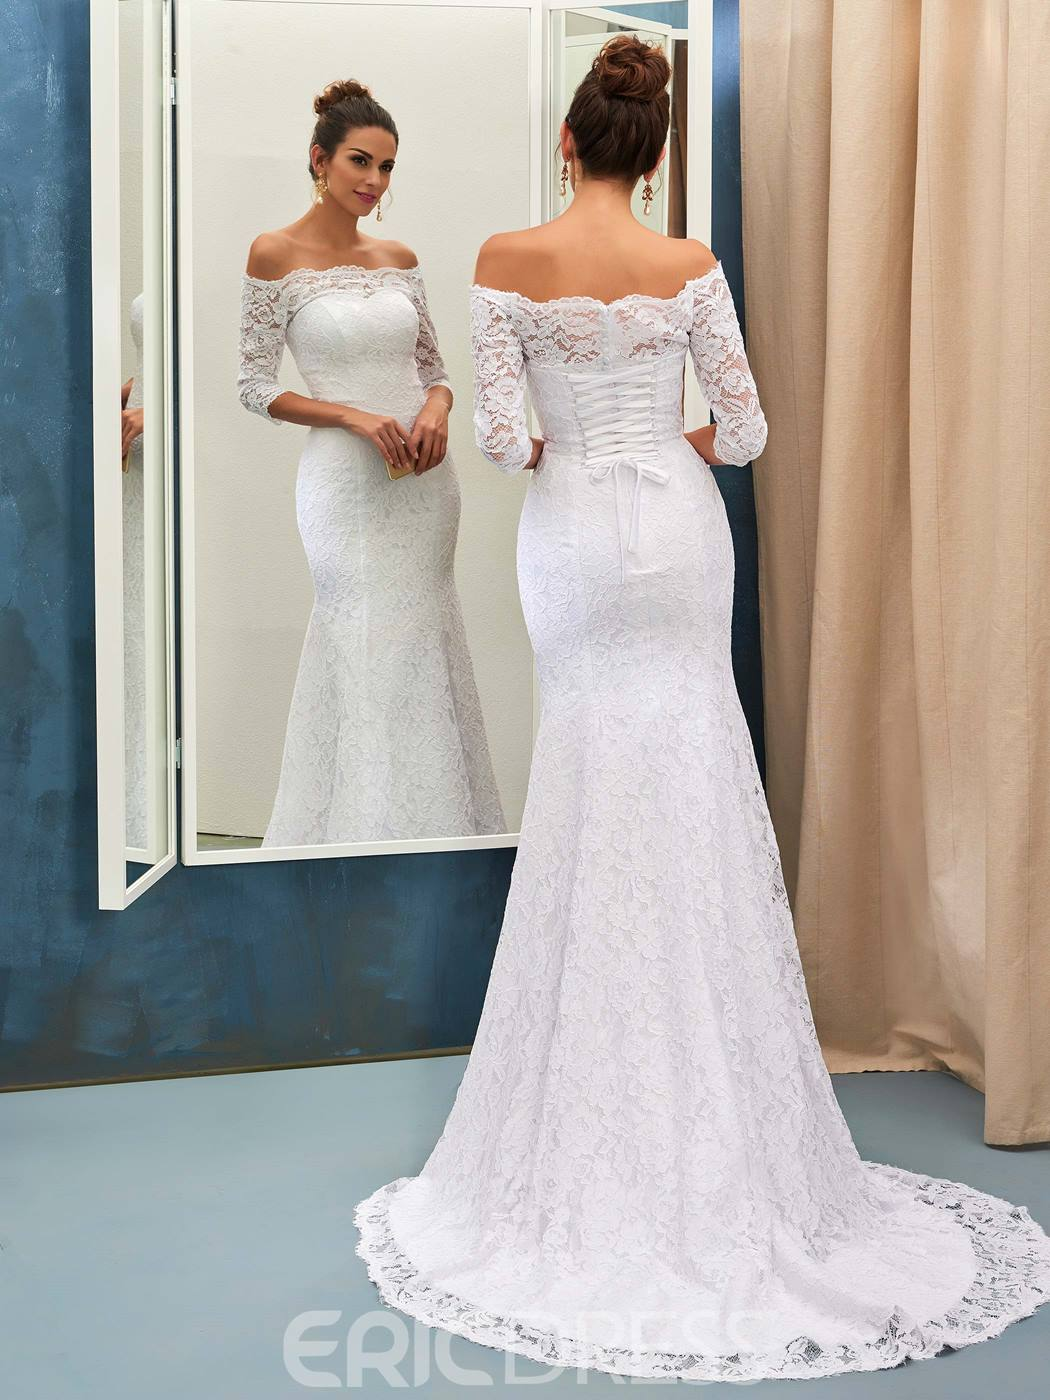 Ericdress lace mermaid off the shoulder wedding dress with sleeves junglespirit Image collections